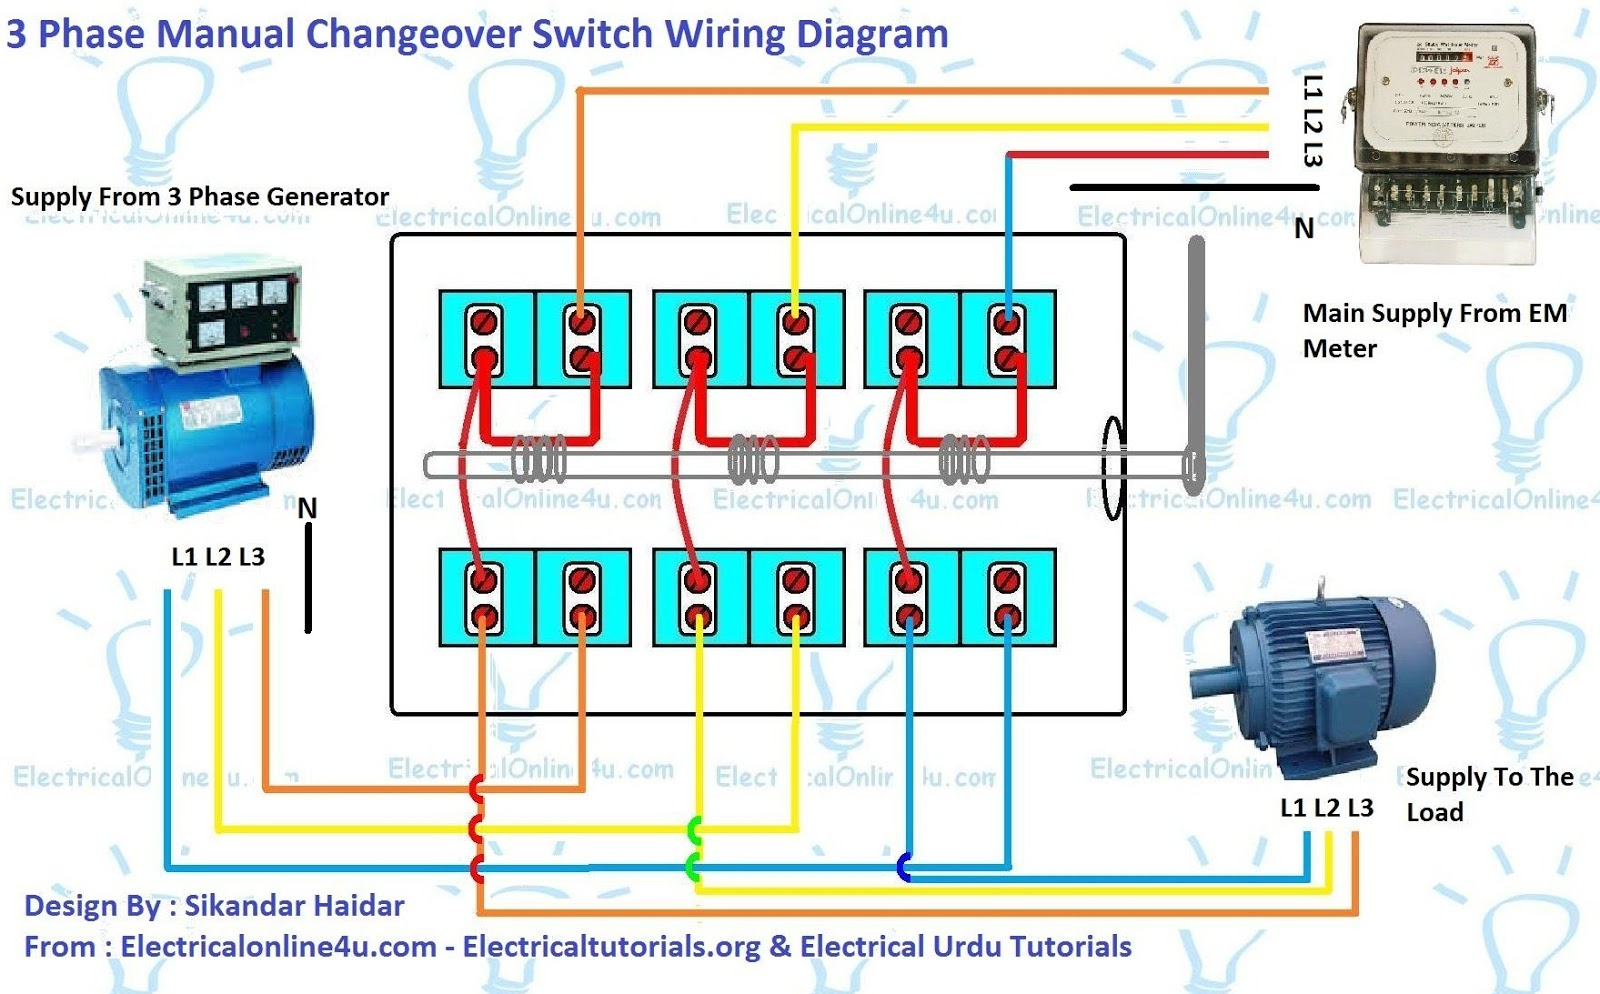 3%2Bphase%2Bmanual%2Bchangeover%2Bswitch%2Bwiring%2Bdiagram 3 phase manual changeover switch wiring diagram for generator 3 phase manual changeover switch wiring diagram at aneh.co